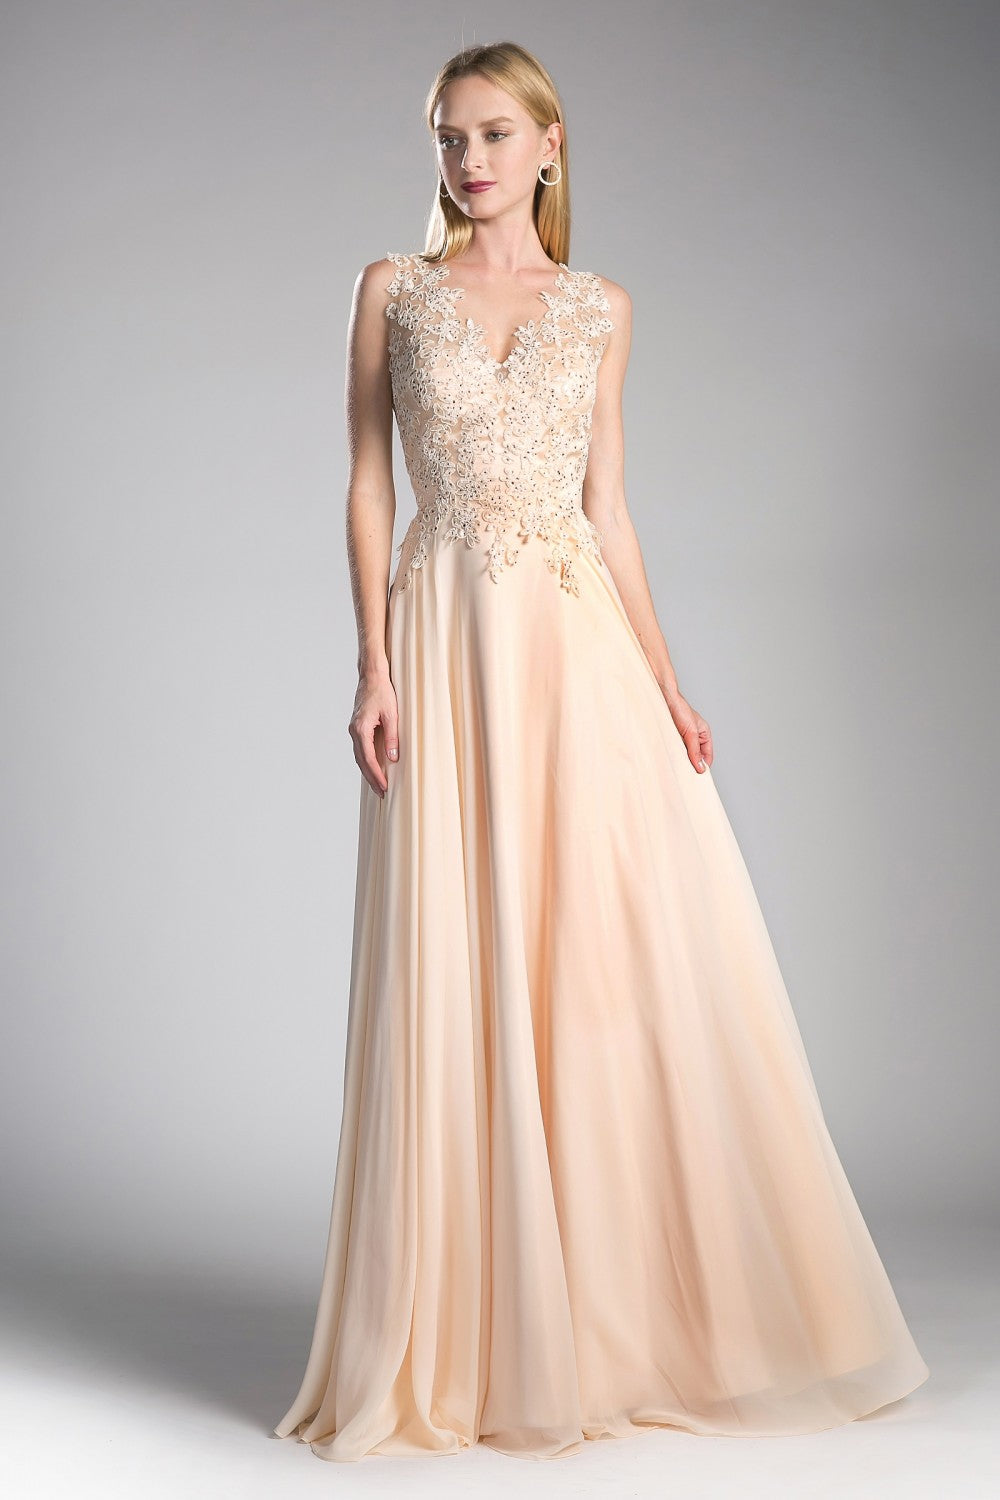 Suzette Formal Dress Lace Top Full Skirt Gown C9177WR-Champagne SAMPLE IN STORE